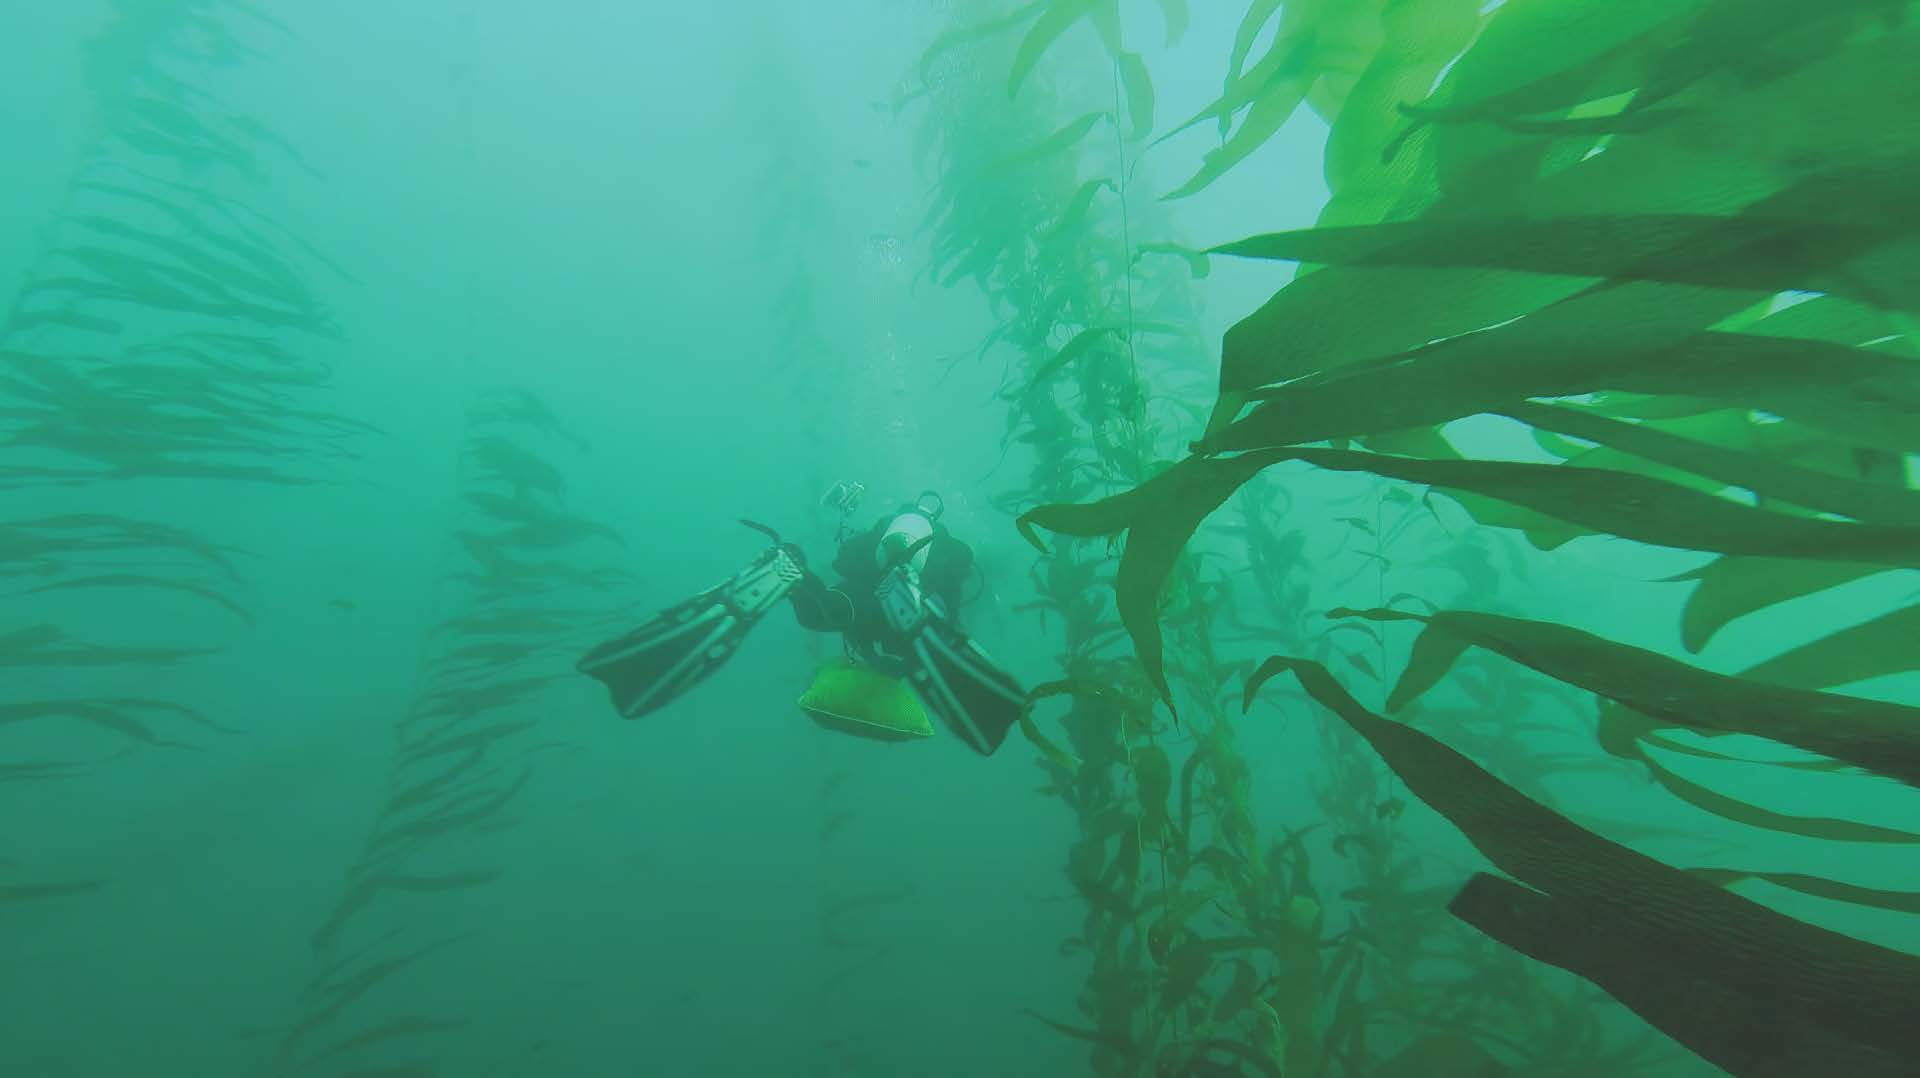 The great green unknown: A diver descends through a giant kelp forest. Photo credit: S Kram